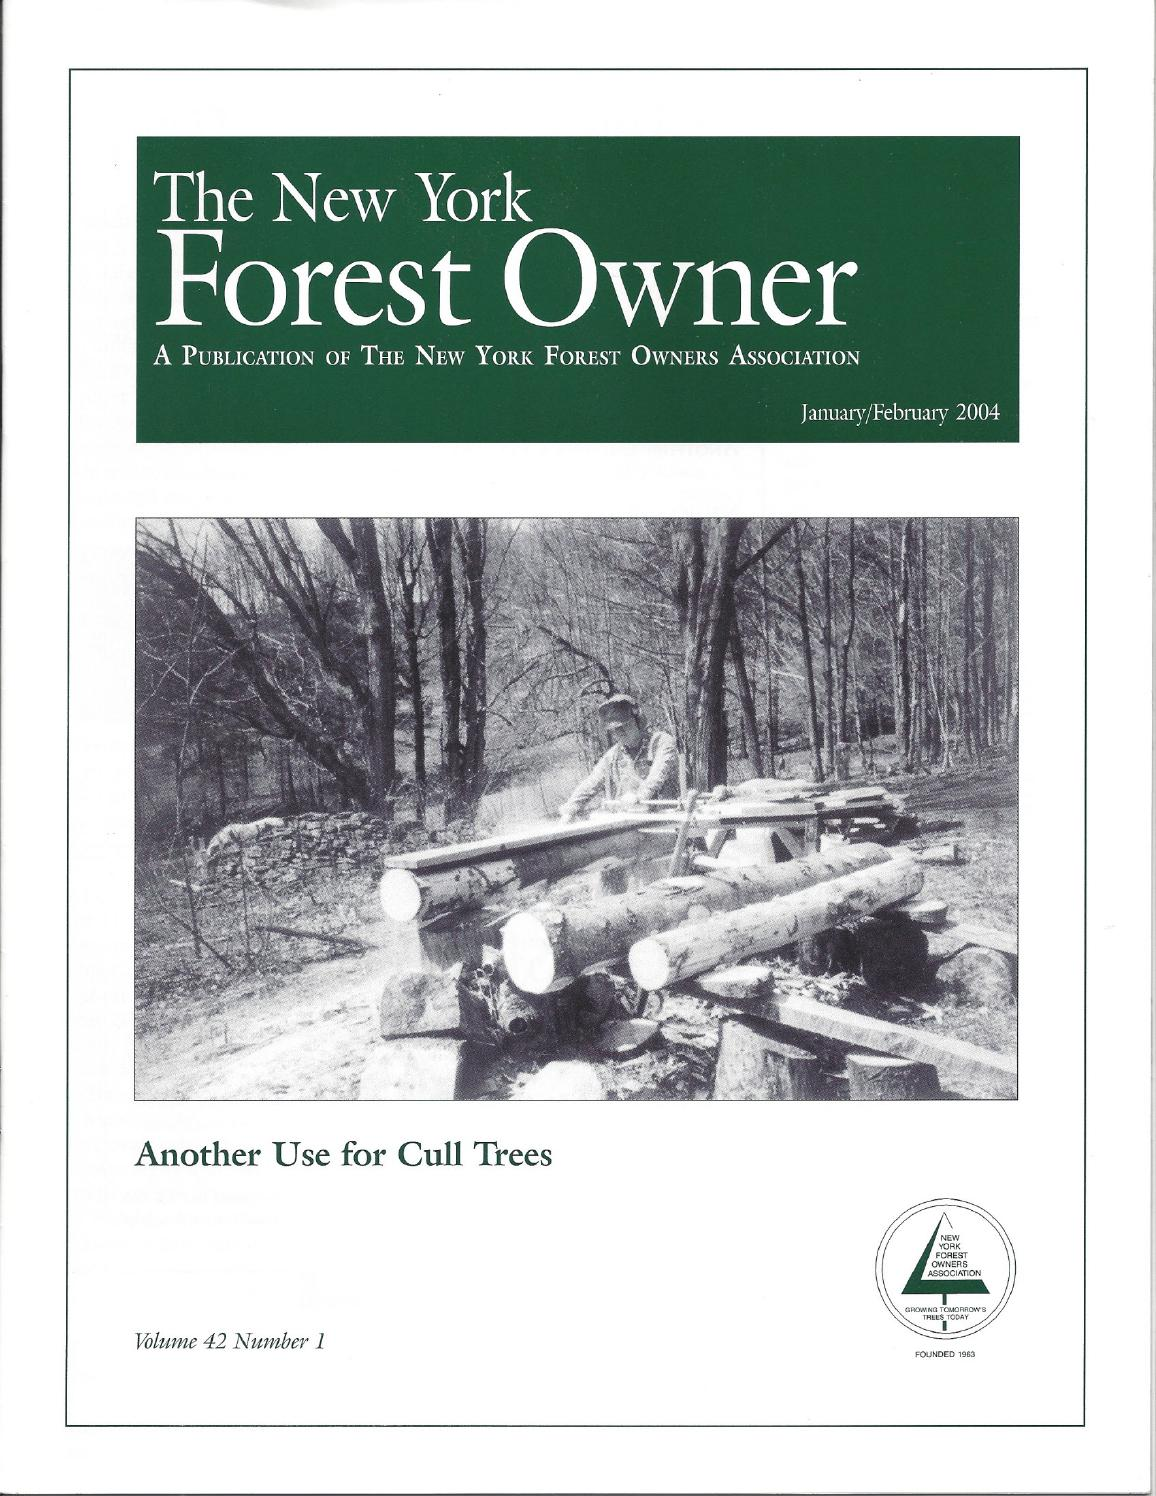 The New York Forest Owner - Volume 42 Number 1 by Jim Minor